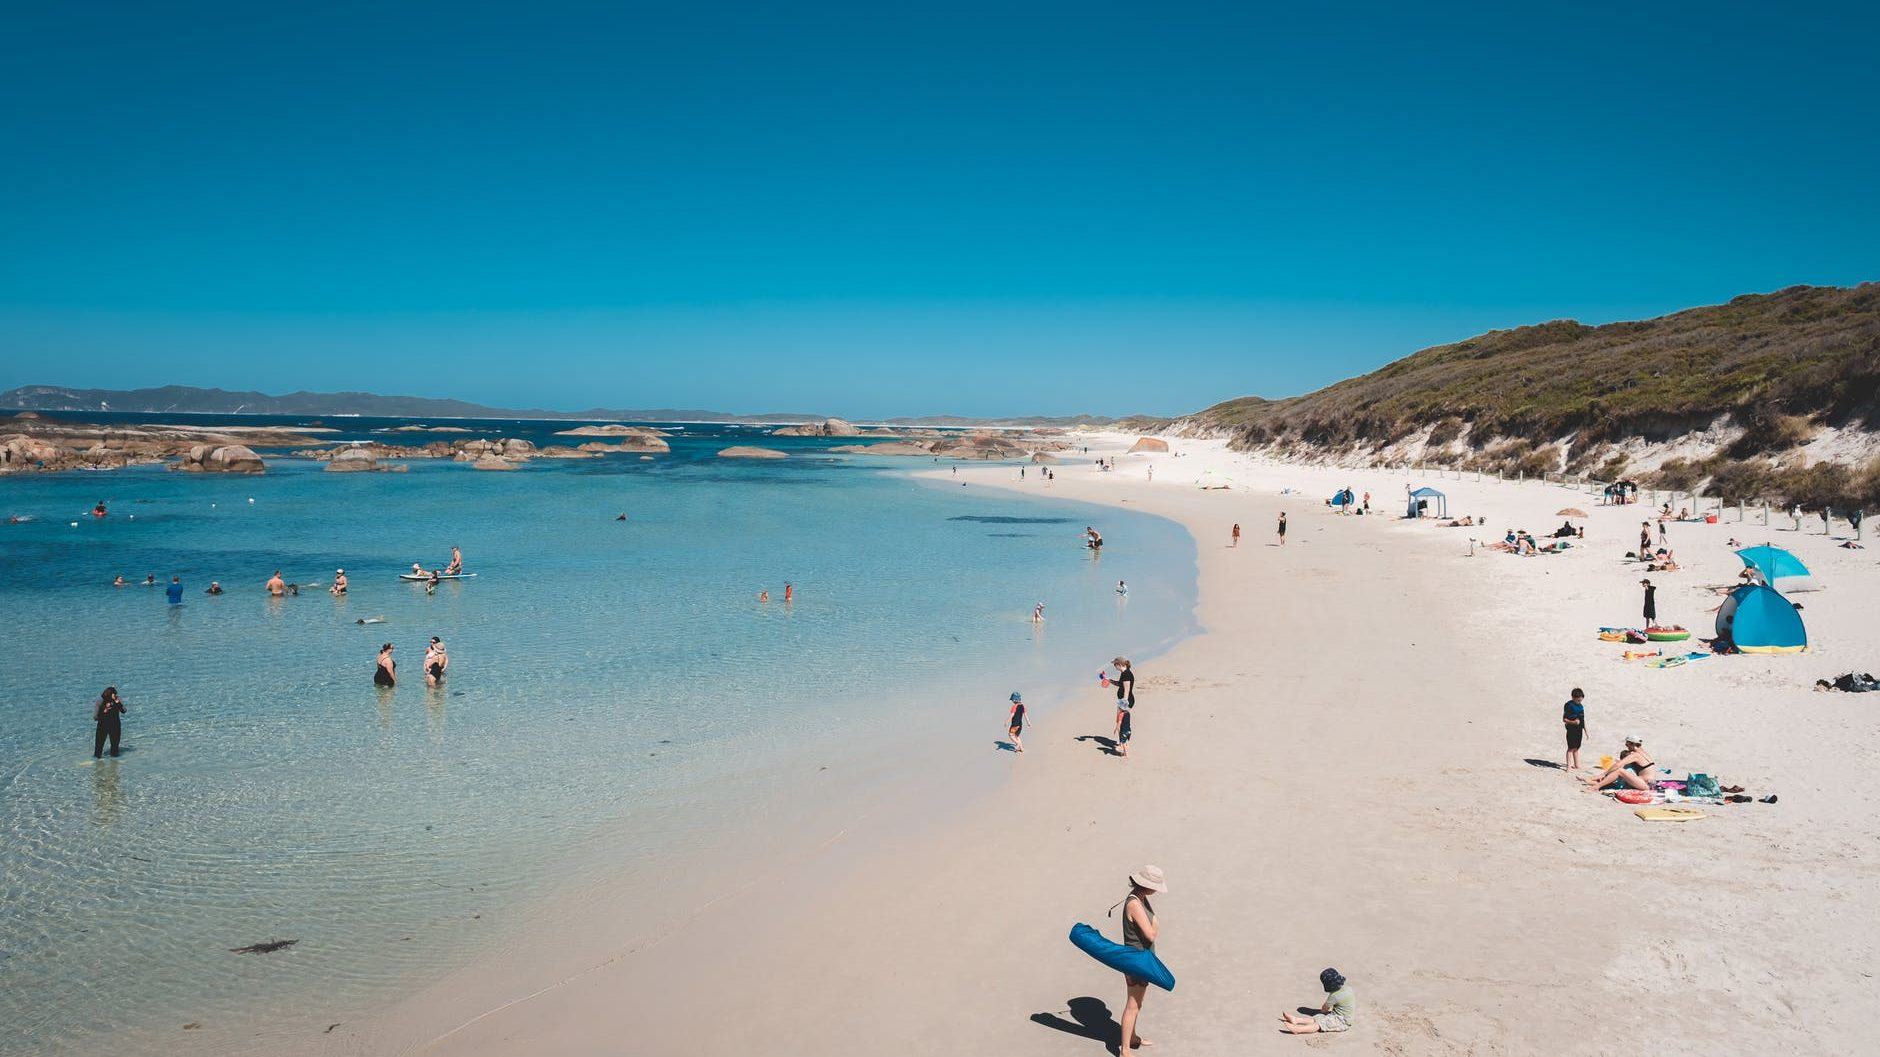 sandy beach with many people in sunny summer weather